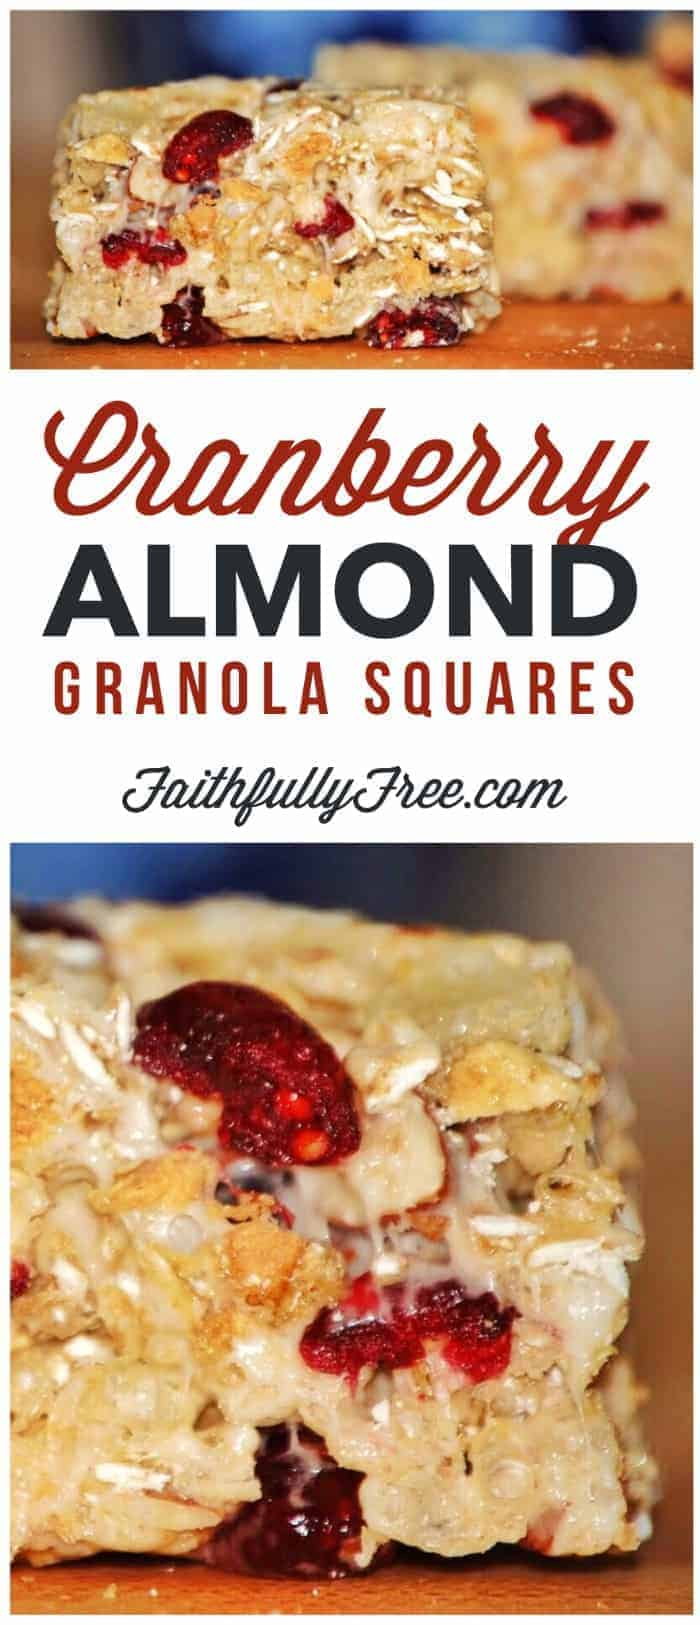 Cranberry Almond Granola Squares Recipe